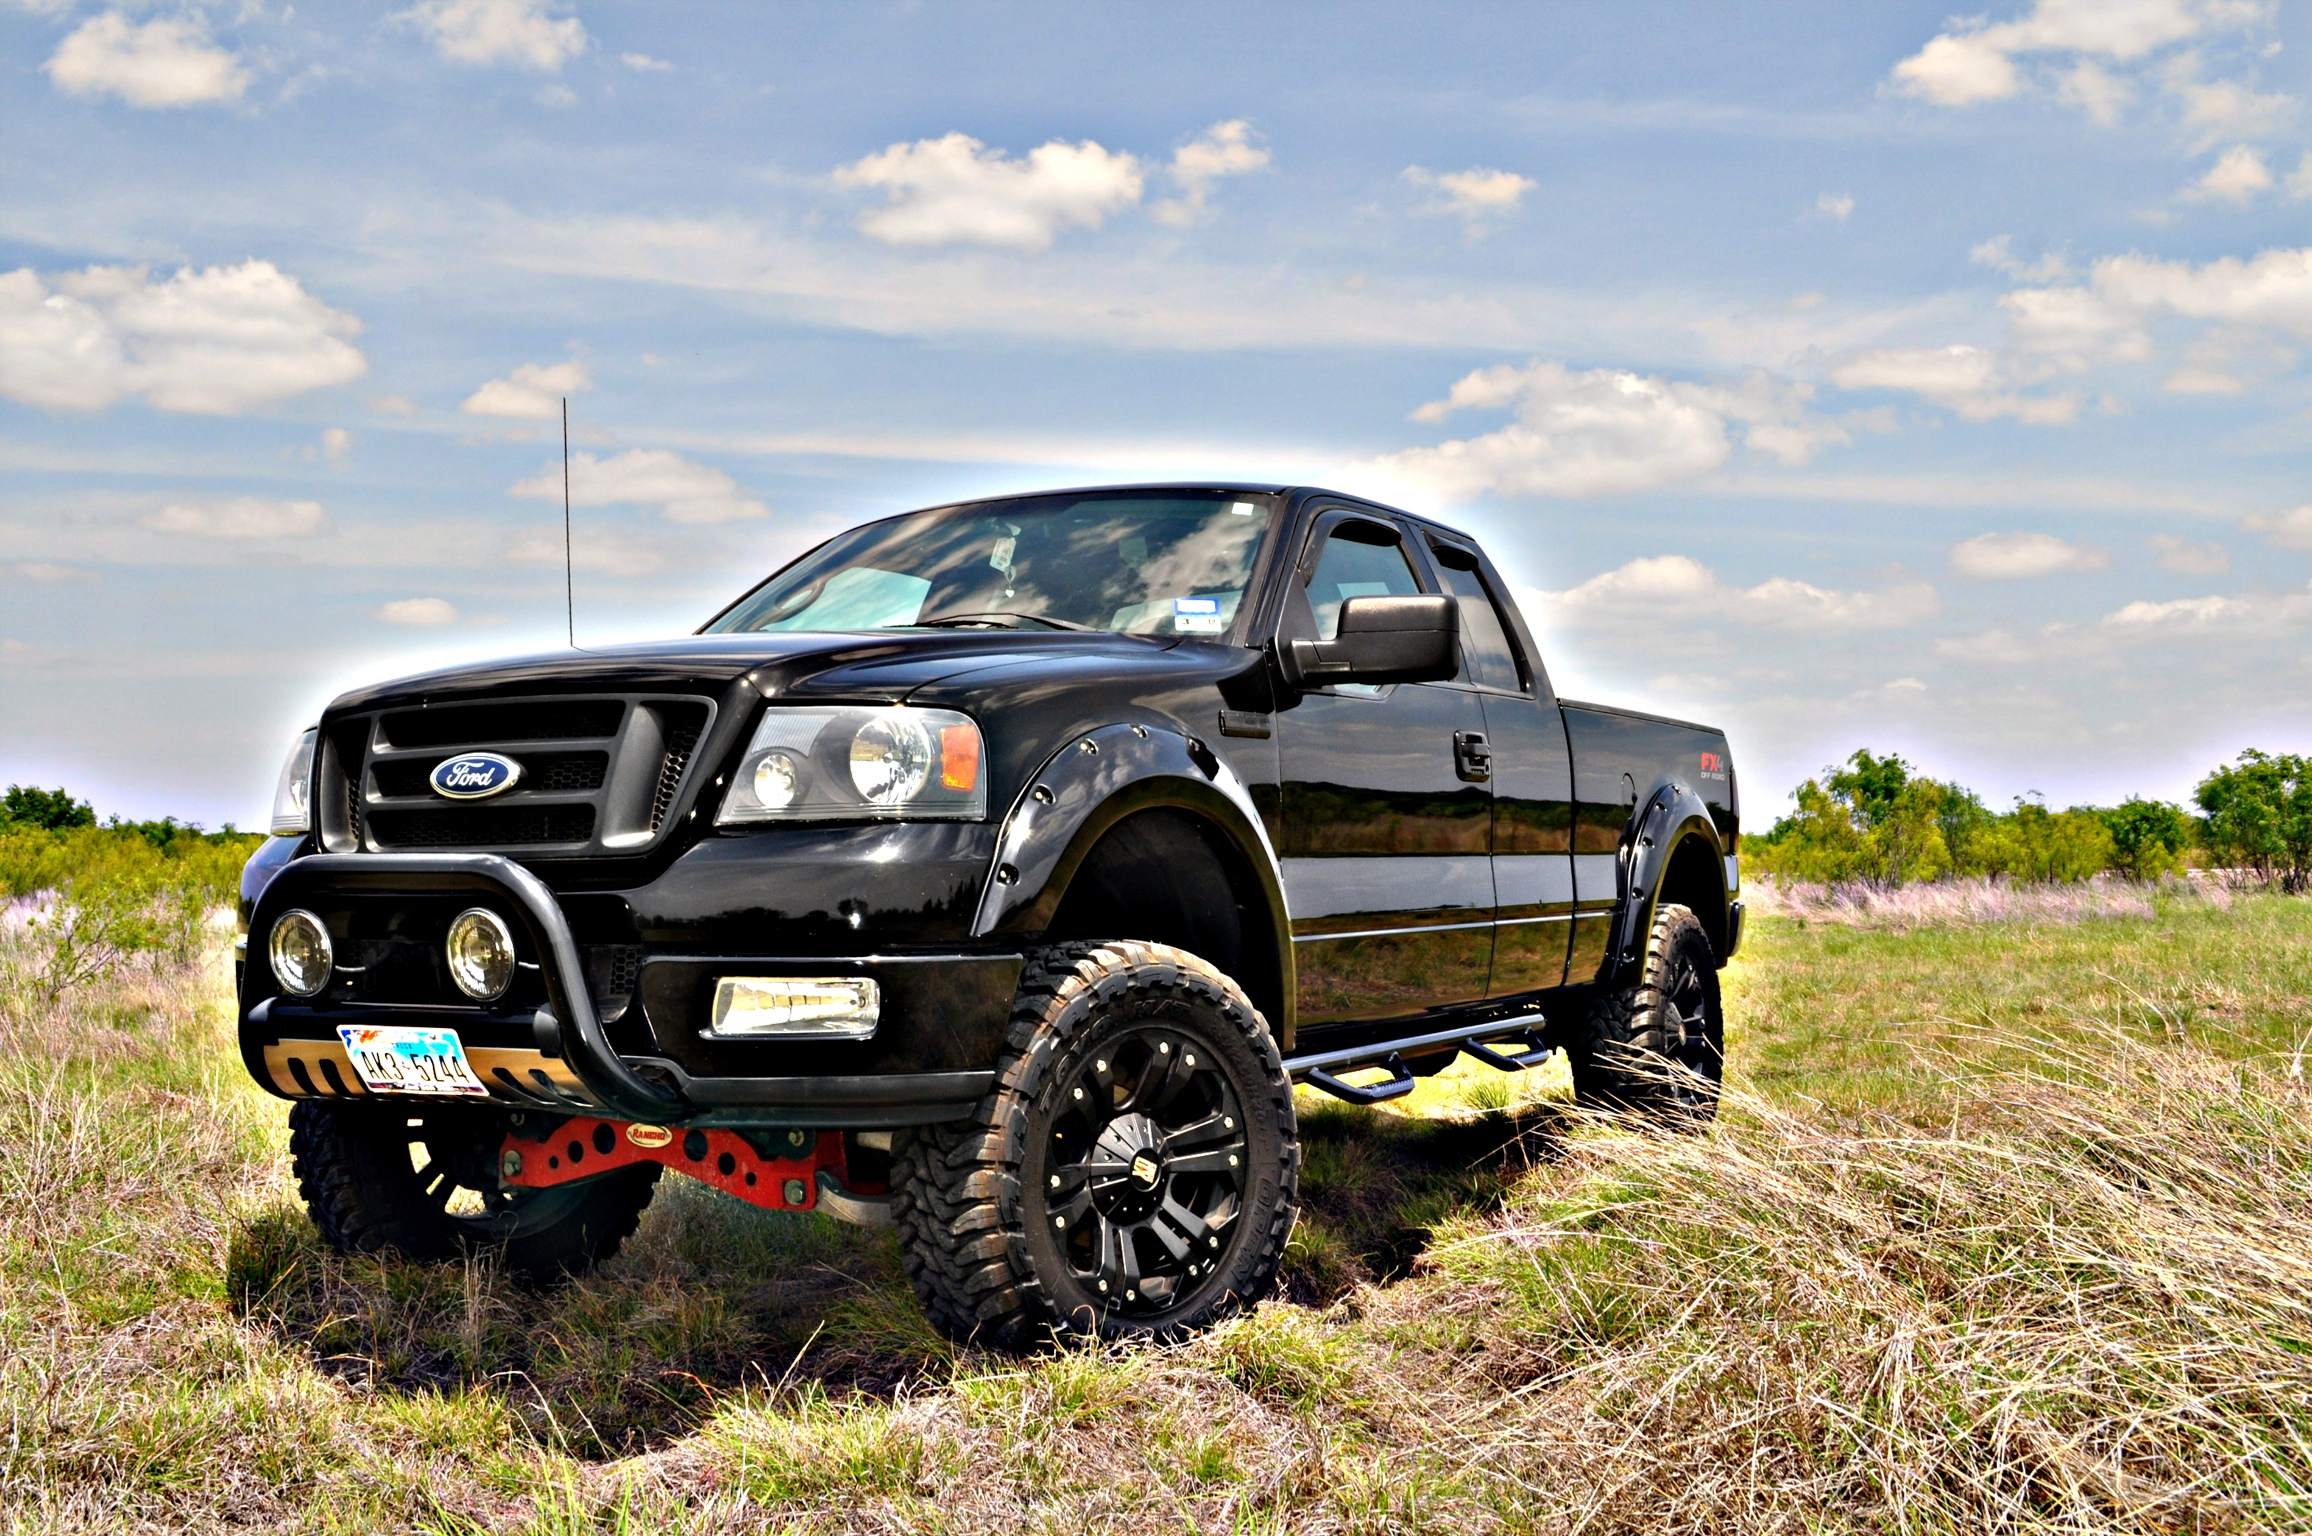 F150 Fx4 2004 Ford F150 Super Cabfx4 Styleside Pickup 4d 6 1 2 Ft Specs Photos Modification Info At Cardomain